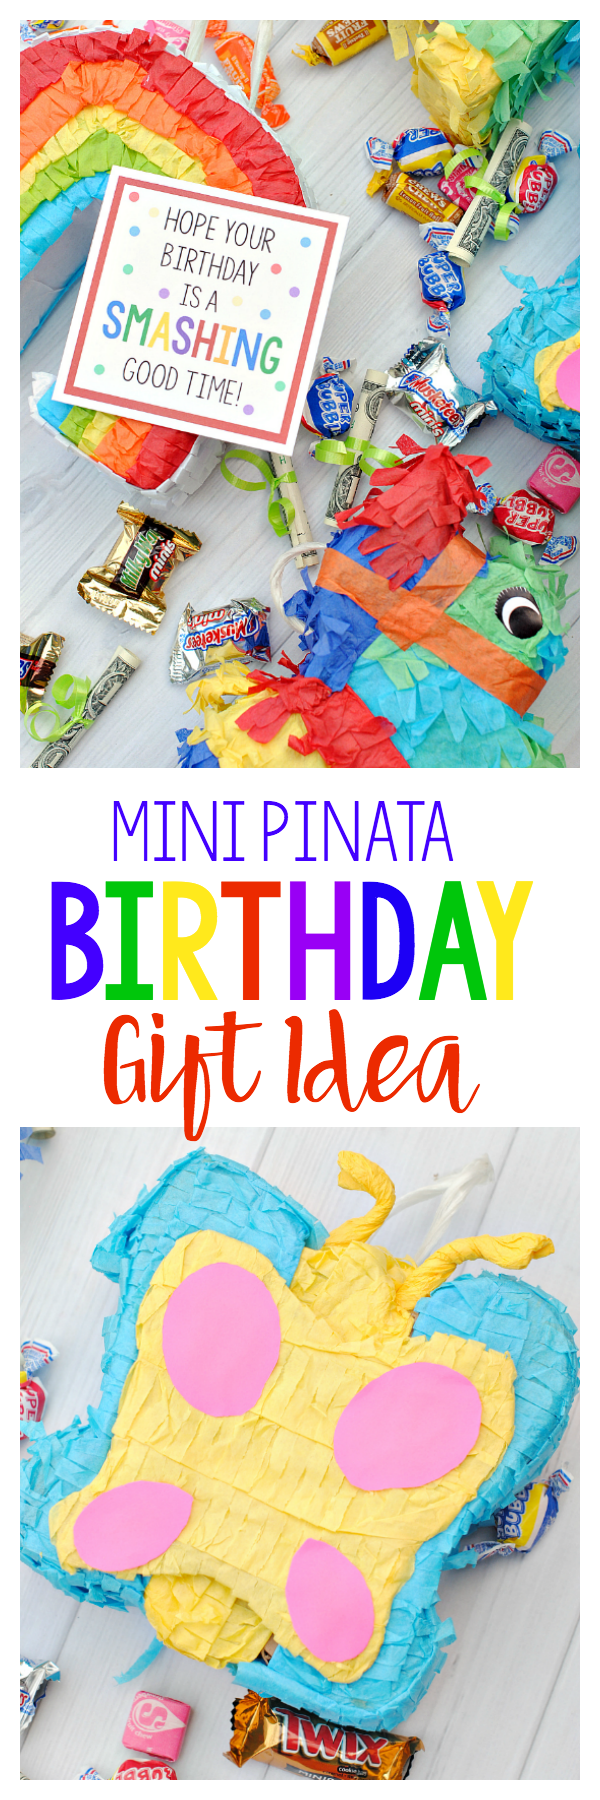 Creative Birthday Gift Idea with Mini Piñatas